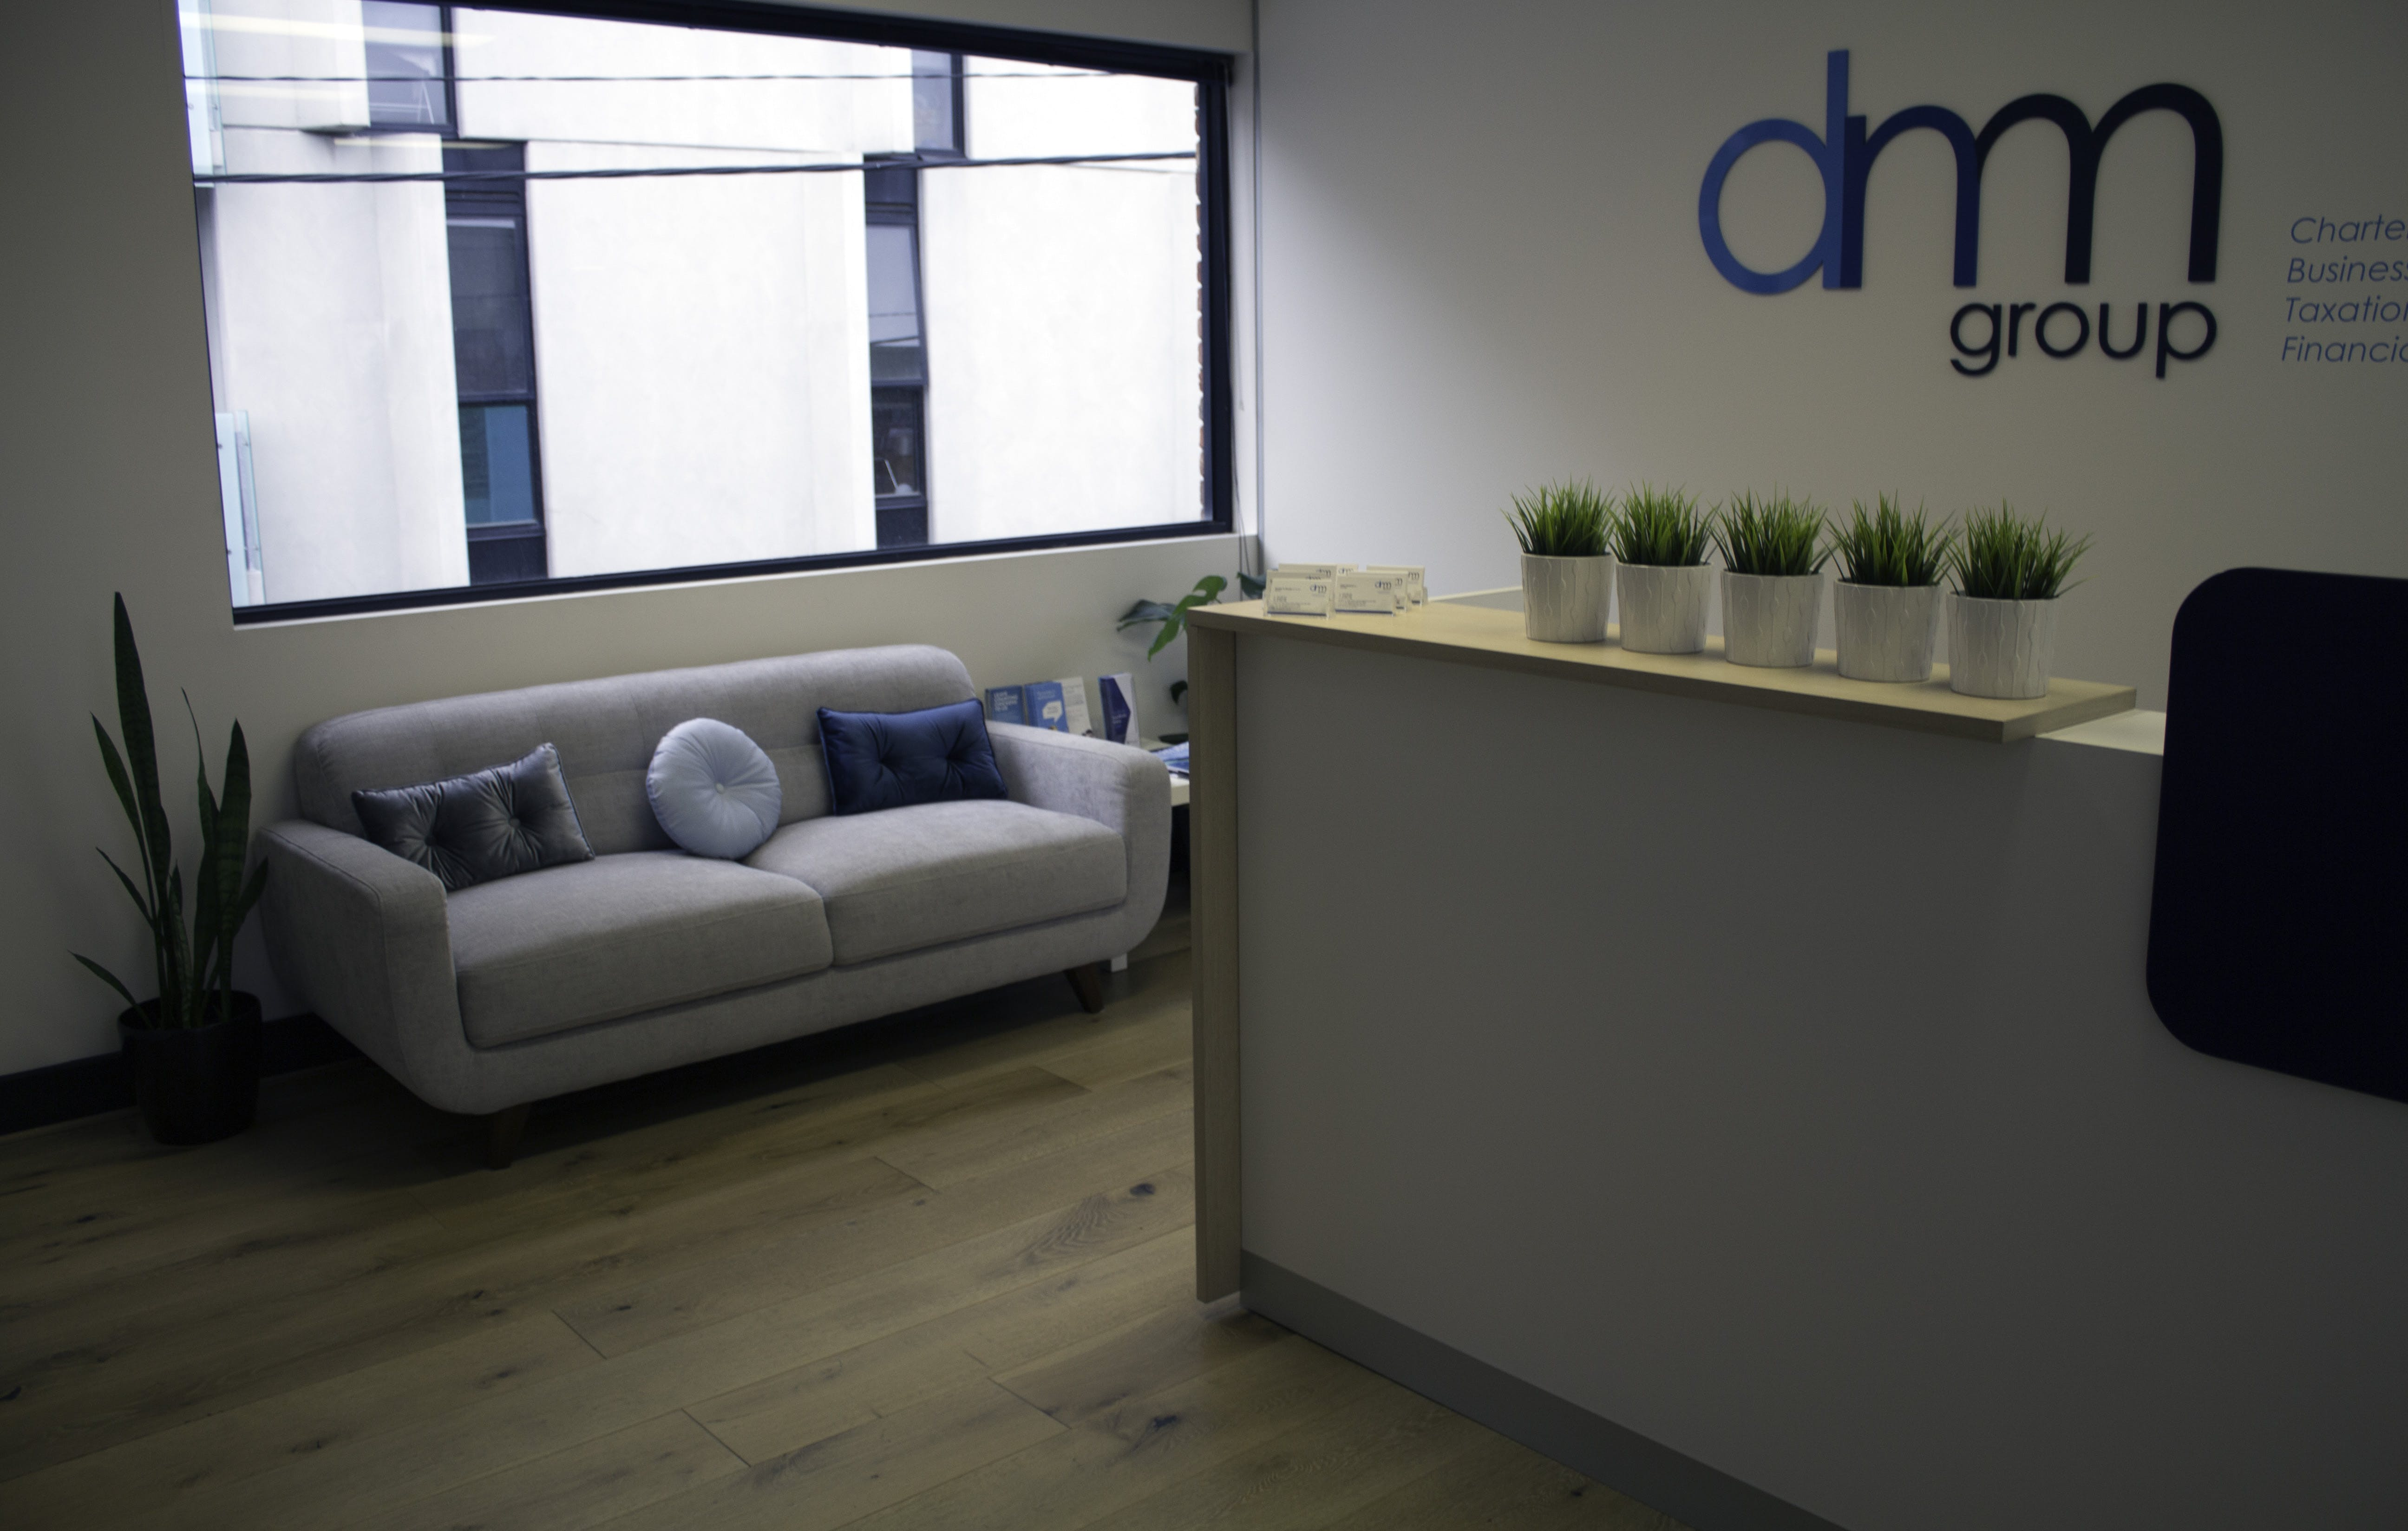 Suite 3, dedicated desk at DNM Group, image 1